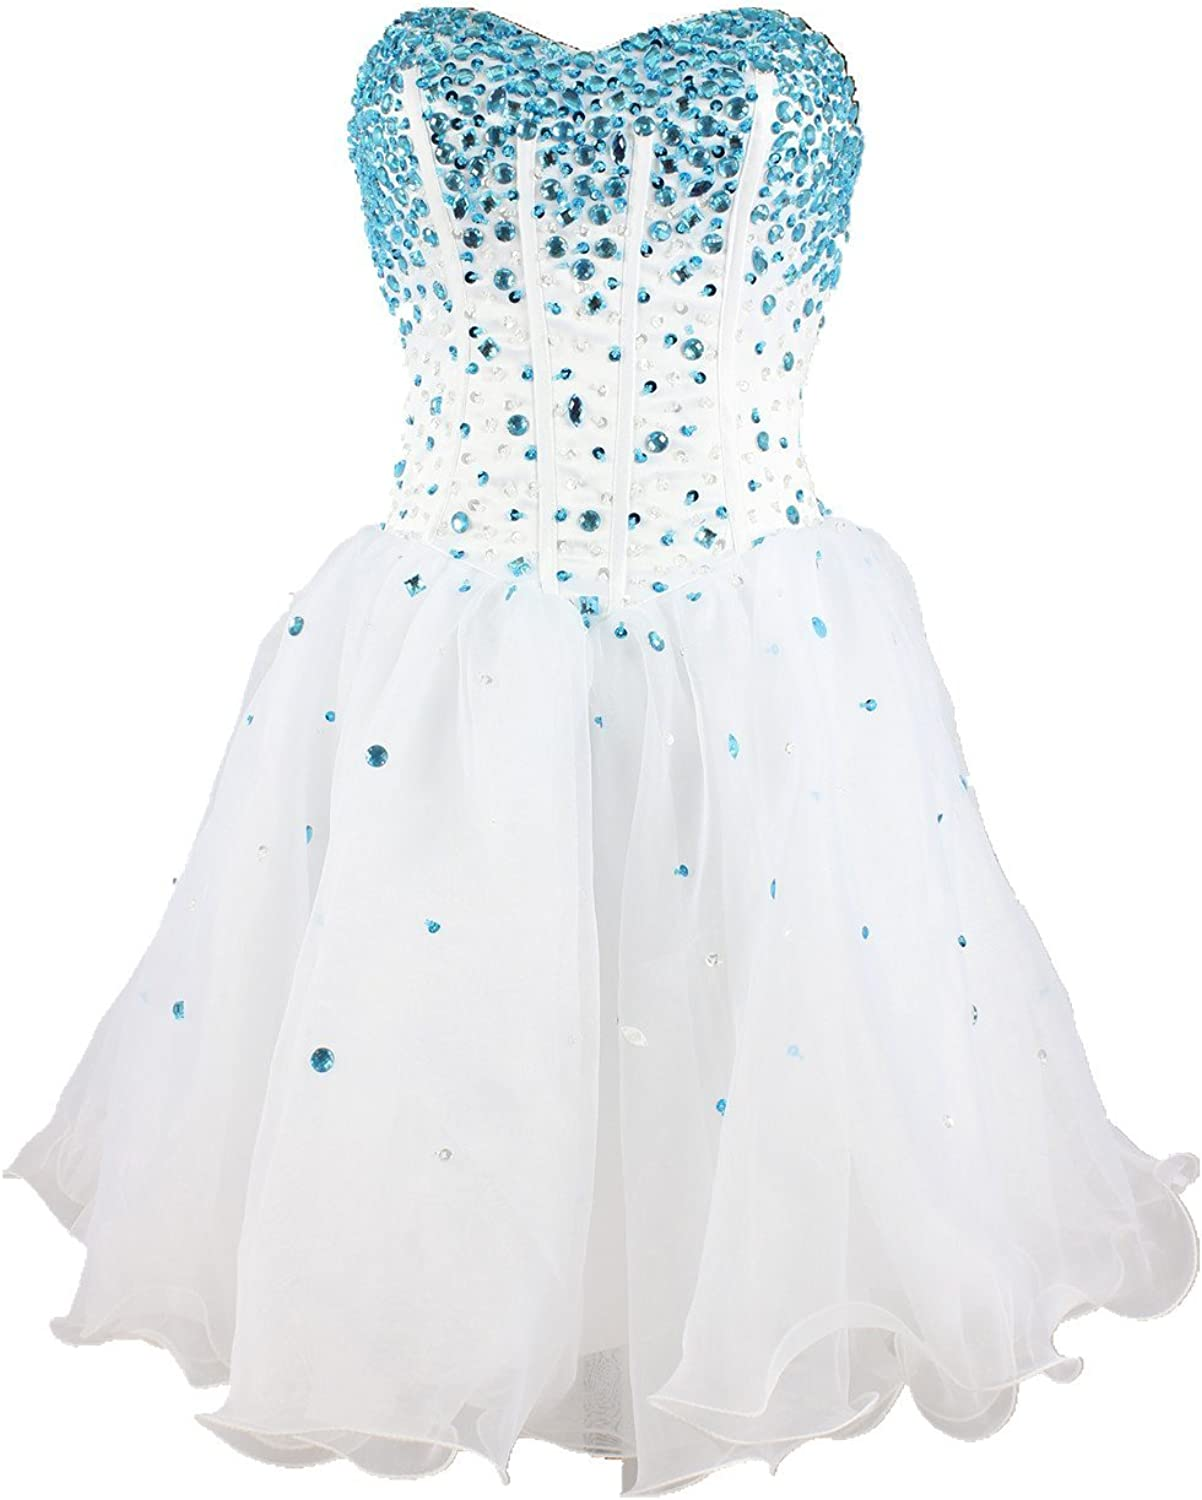 CharmingBridal Girl's Strapless Crystal Homecoming Dress Short Prom Dress SD001